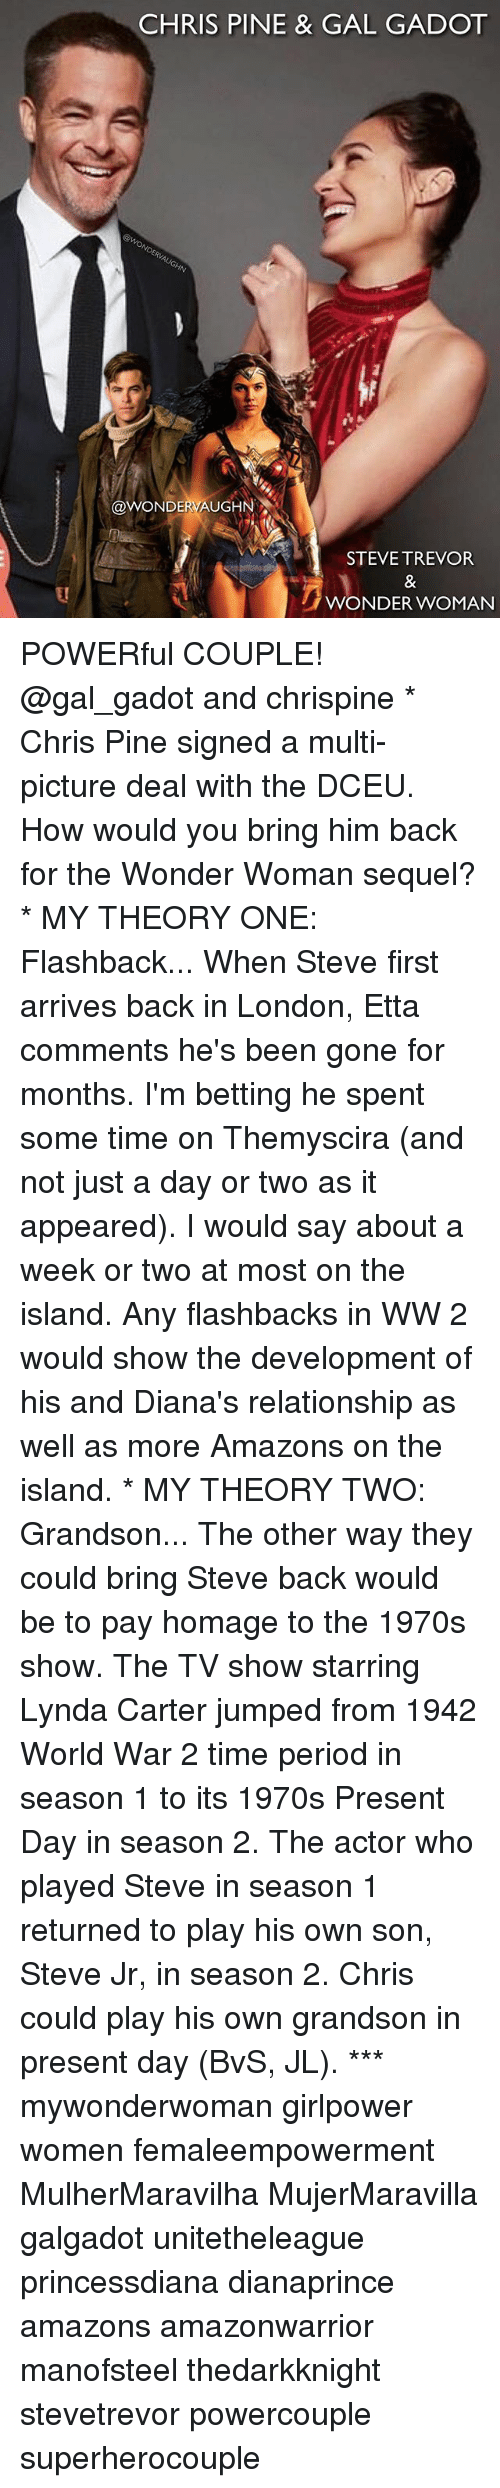 Chris Pine: CHRIS PINE & GAL GADOT  @WONDERVAUGHN  STEVE TREVOR  WONDER WOMAN POWERful COUPLE! @gal_gadot and chrispine * Chris Pine signed a multi-picture deal with the DCEU. How would you bring him back for the Wonder Woman sequel? * MY THEORY ONE: Flashback... When Steve first arrives back in London, Etta comments he's been gone for months. I'm betting he spent some time on Themyscira (and not just a day or two as it appeared). I would say about a week or two at most on the island. Any flashbacks in WW 2 would show the development of his and Diana's relationship as well as more Amazons on the island. * MY THEORY TWO: Grandson... The other way they could bring Steve back would be to pay homage to the 1970s show. The TV show starring Lynda Carter jumped from 1942 World War 2 time period in season 1 to its 1970s Present Day in season 2. The actor who played Steve in season 1 returned to play his own son, Steve Jr, in season 2. Chris could play his own grandson in present day (BvS, JL). *** mywonderwoman girlpower women femaleempowerment MulherMaravilha MujerMaravilla galgadot unitetheleague princessdiana dianaprince amazons amazonwarrior manofsteel thedarkknight stevetrevor powercouple superherocouple